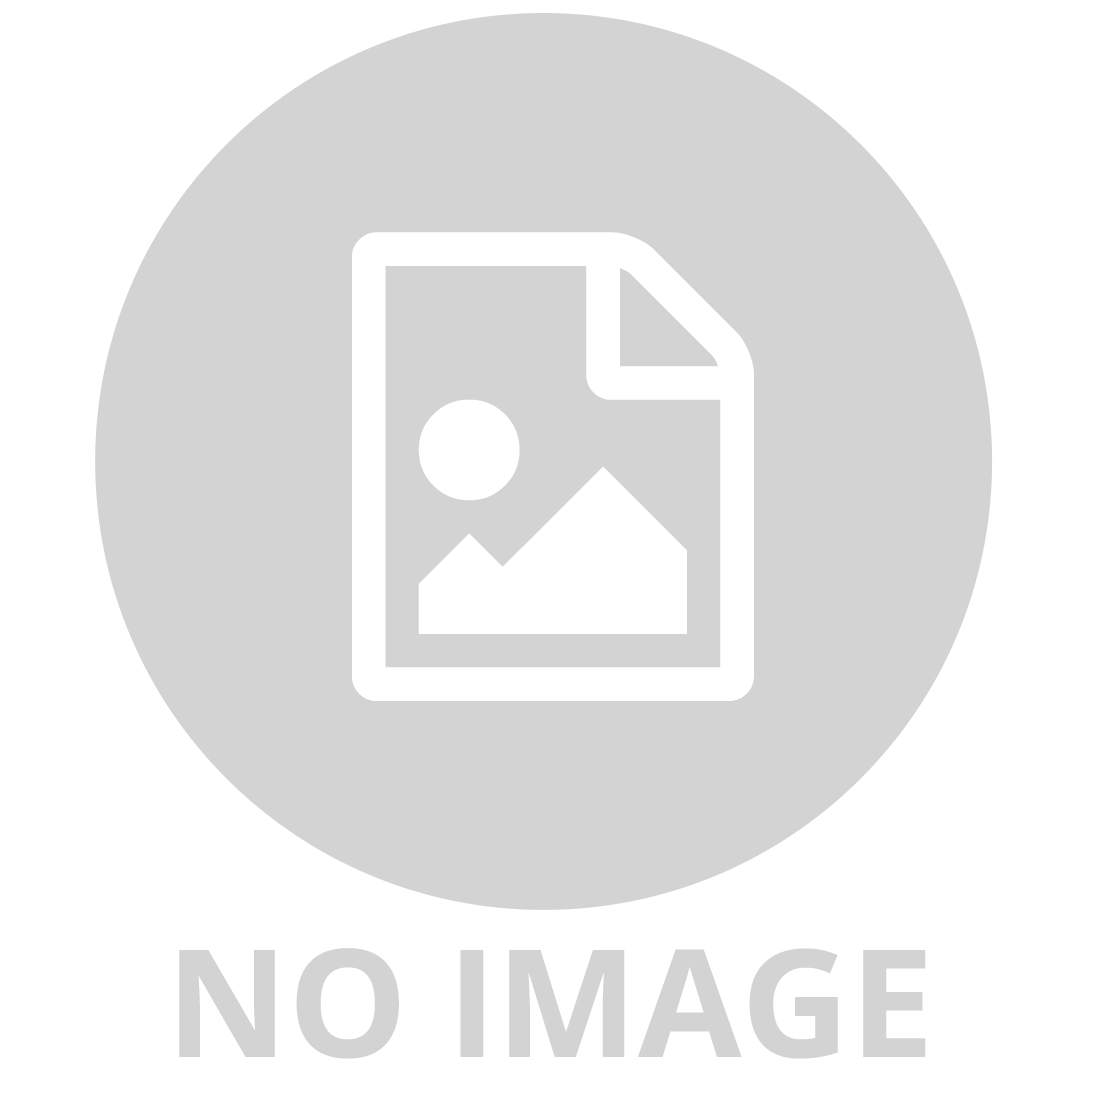 BEANIE BOOS PATSY THE POODLE